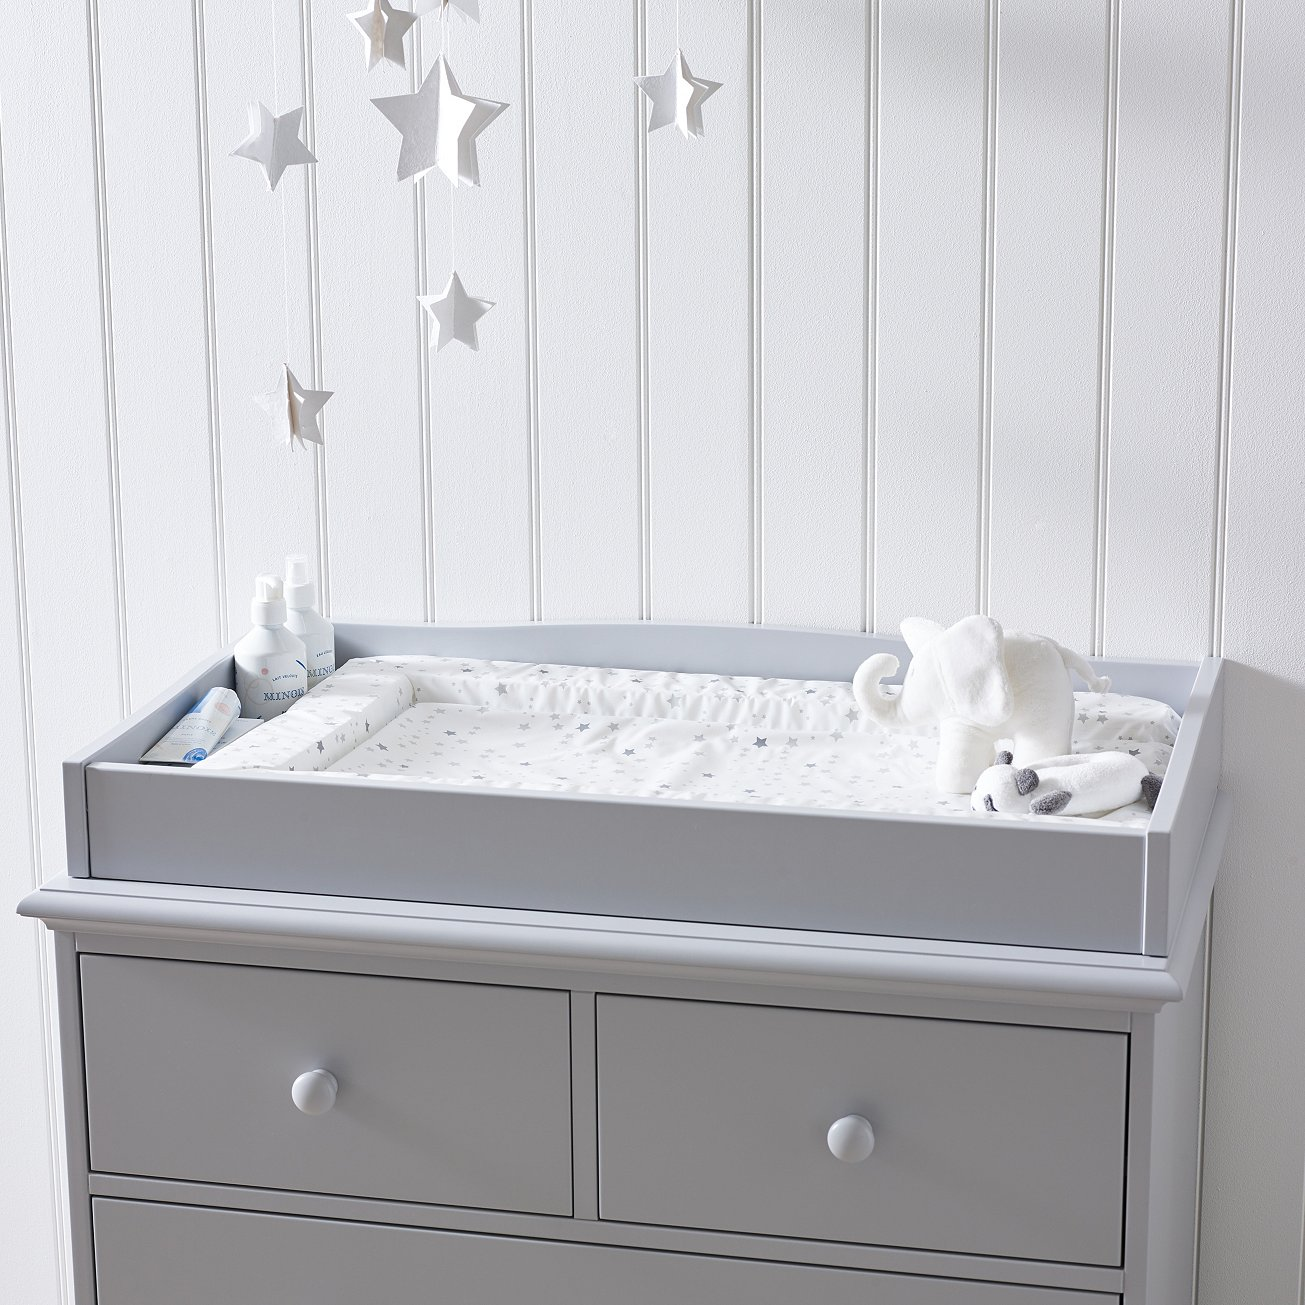 There is no need to change your baby on the dining table anymore. The Changing Top is specially designed to fit on The White Company's Classic Chest of Drawers to provide you with a secure place to attend to your baby. - £99.00